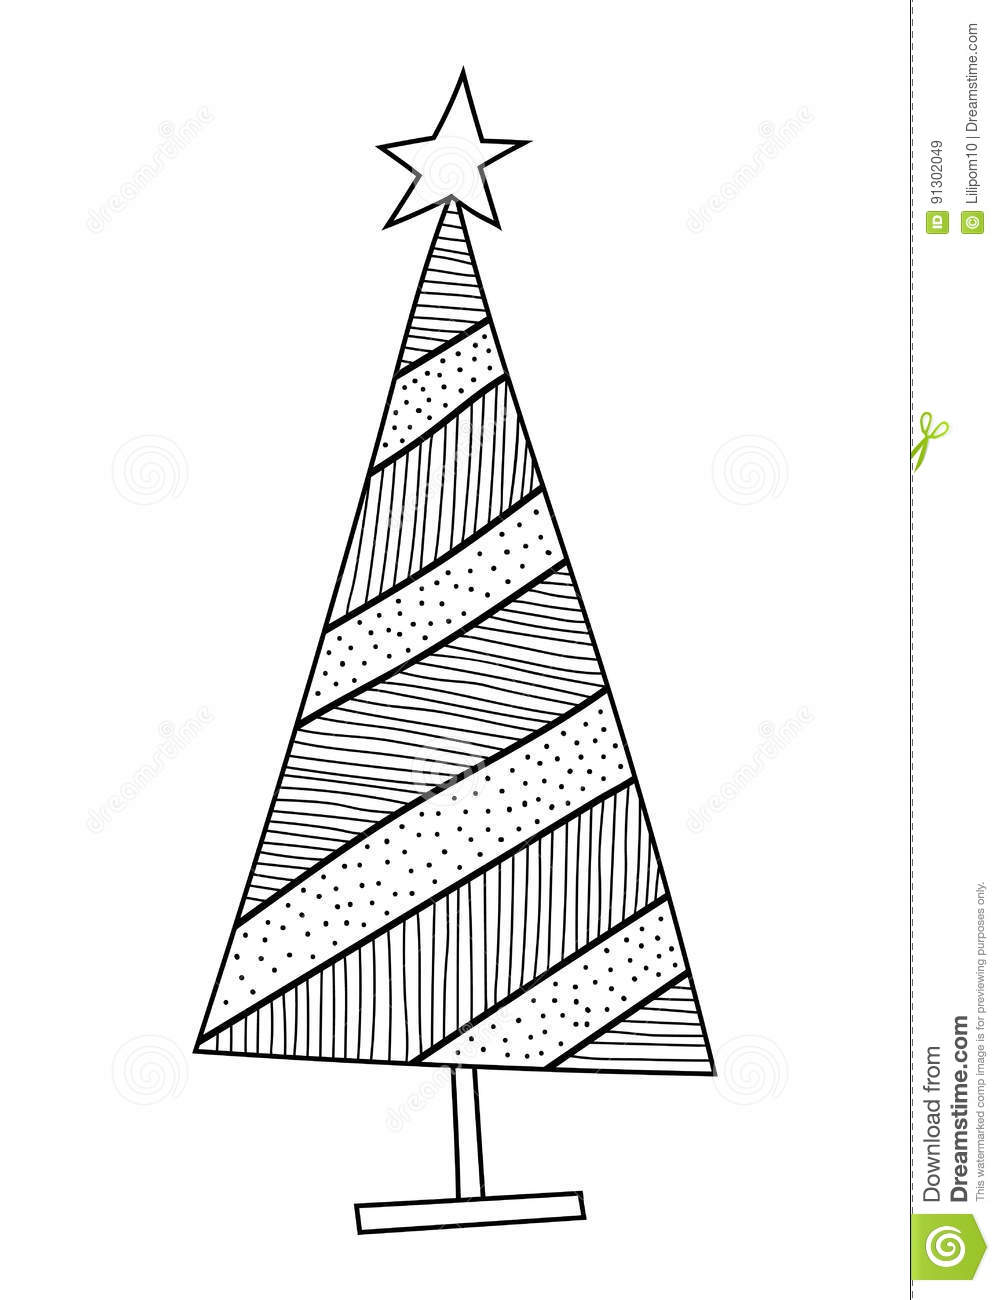 Creative Haven Christmas Trees Coloring Book | Dover Publications ... | 1300x1000